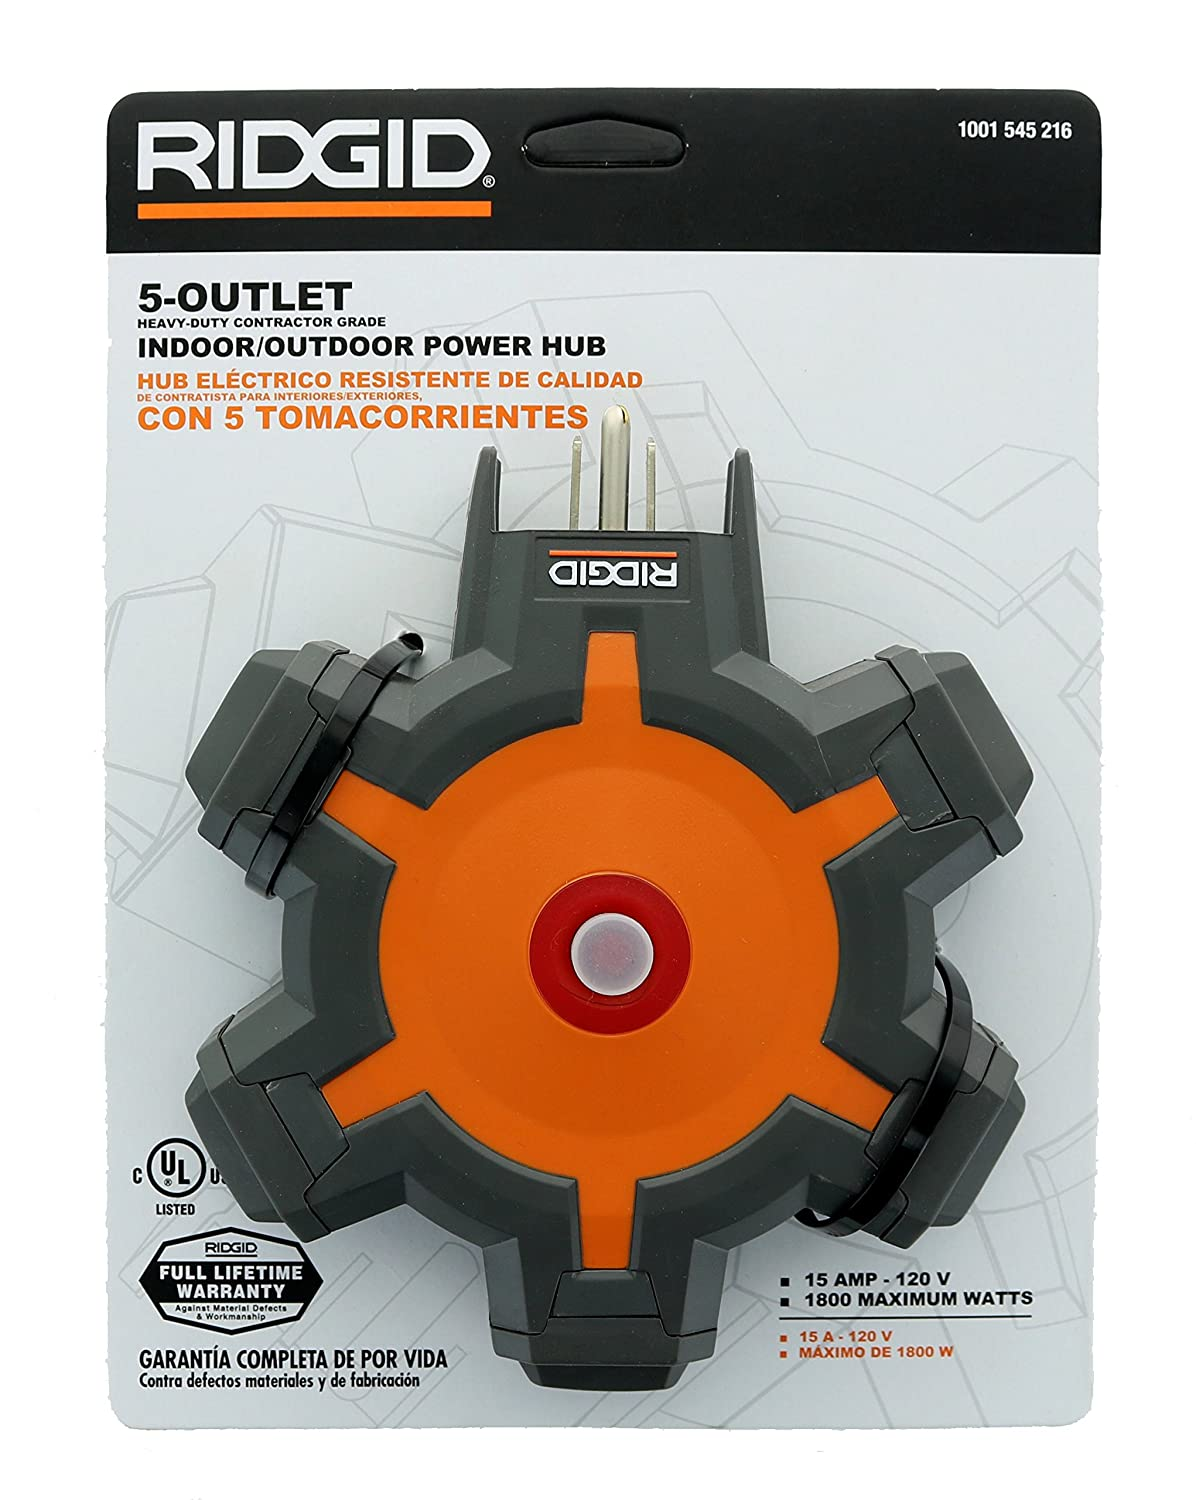 Amazon.com: Ridgid 36009 2 Pack of 5-Outlet Surge Protected Polycarbonate Indoor / Outdoor Power Hub (15 Amps, 120 Volts): Computers & Accessories